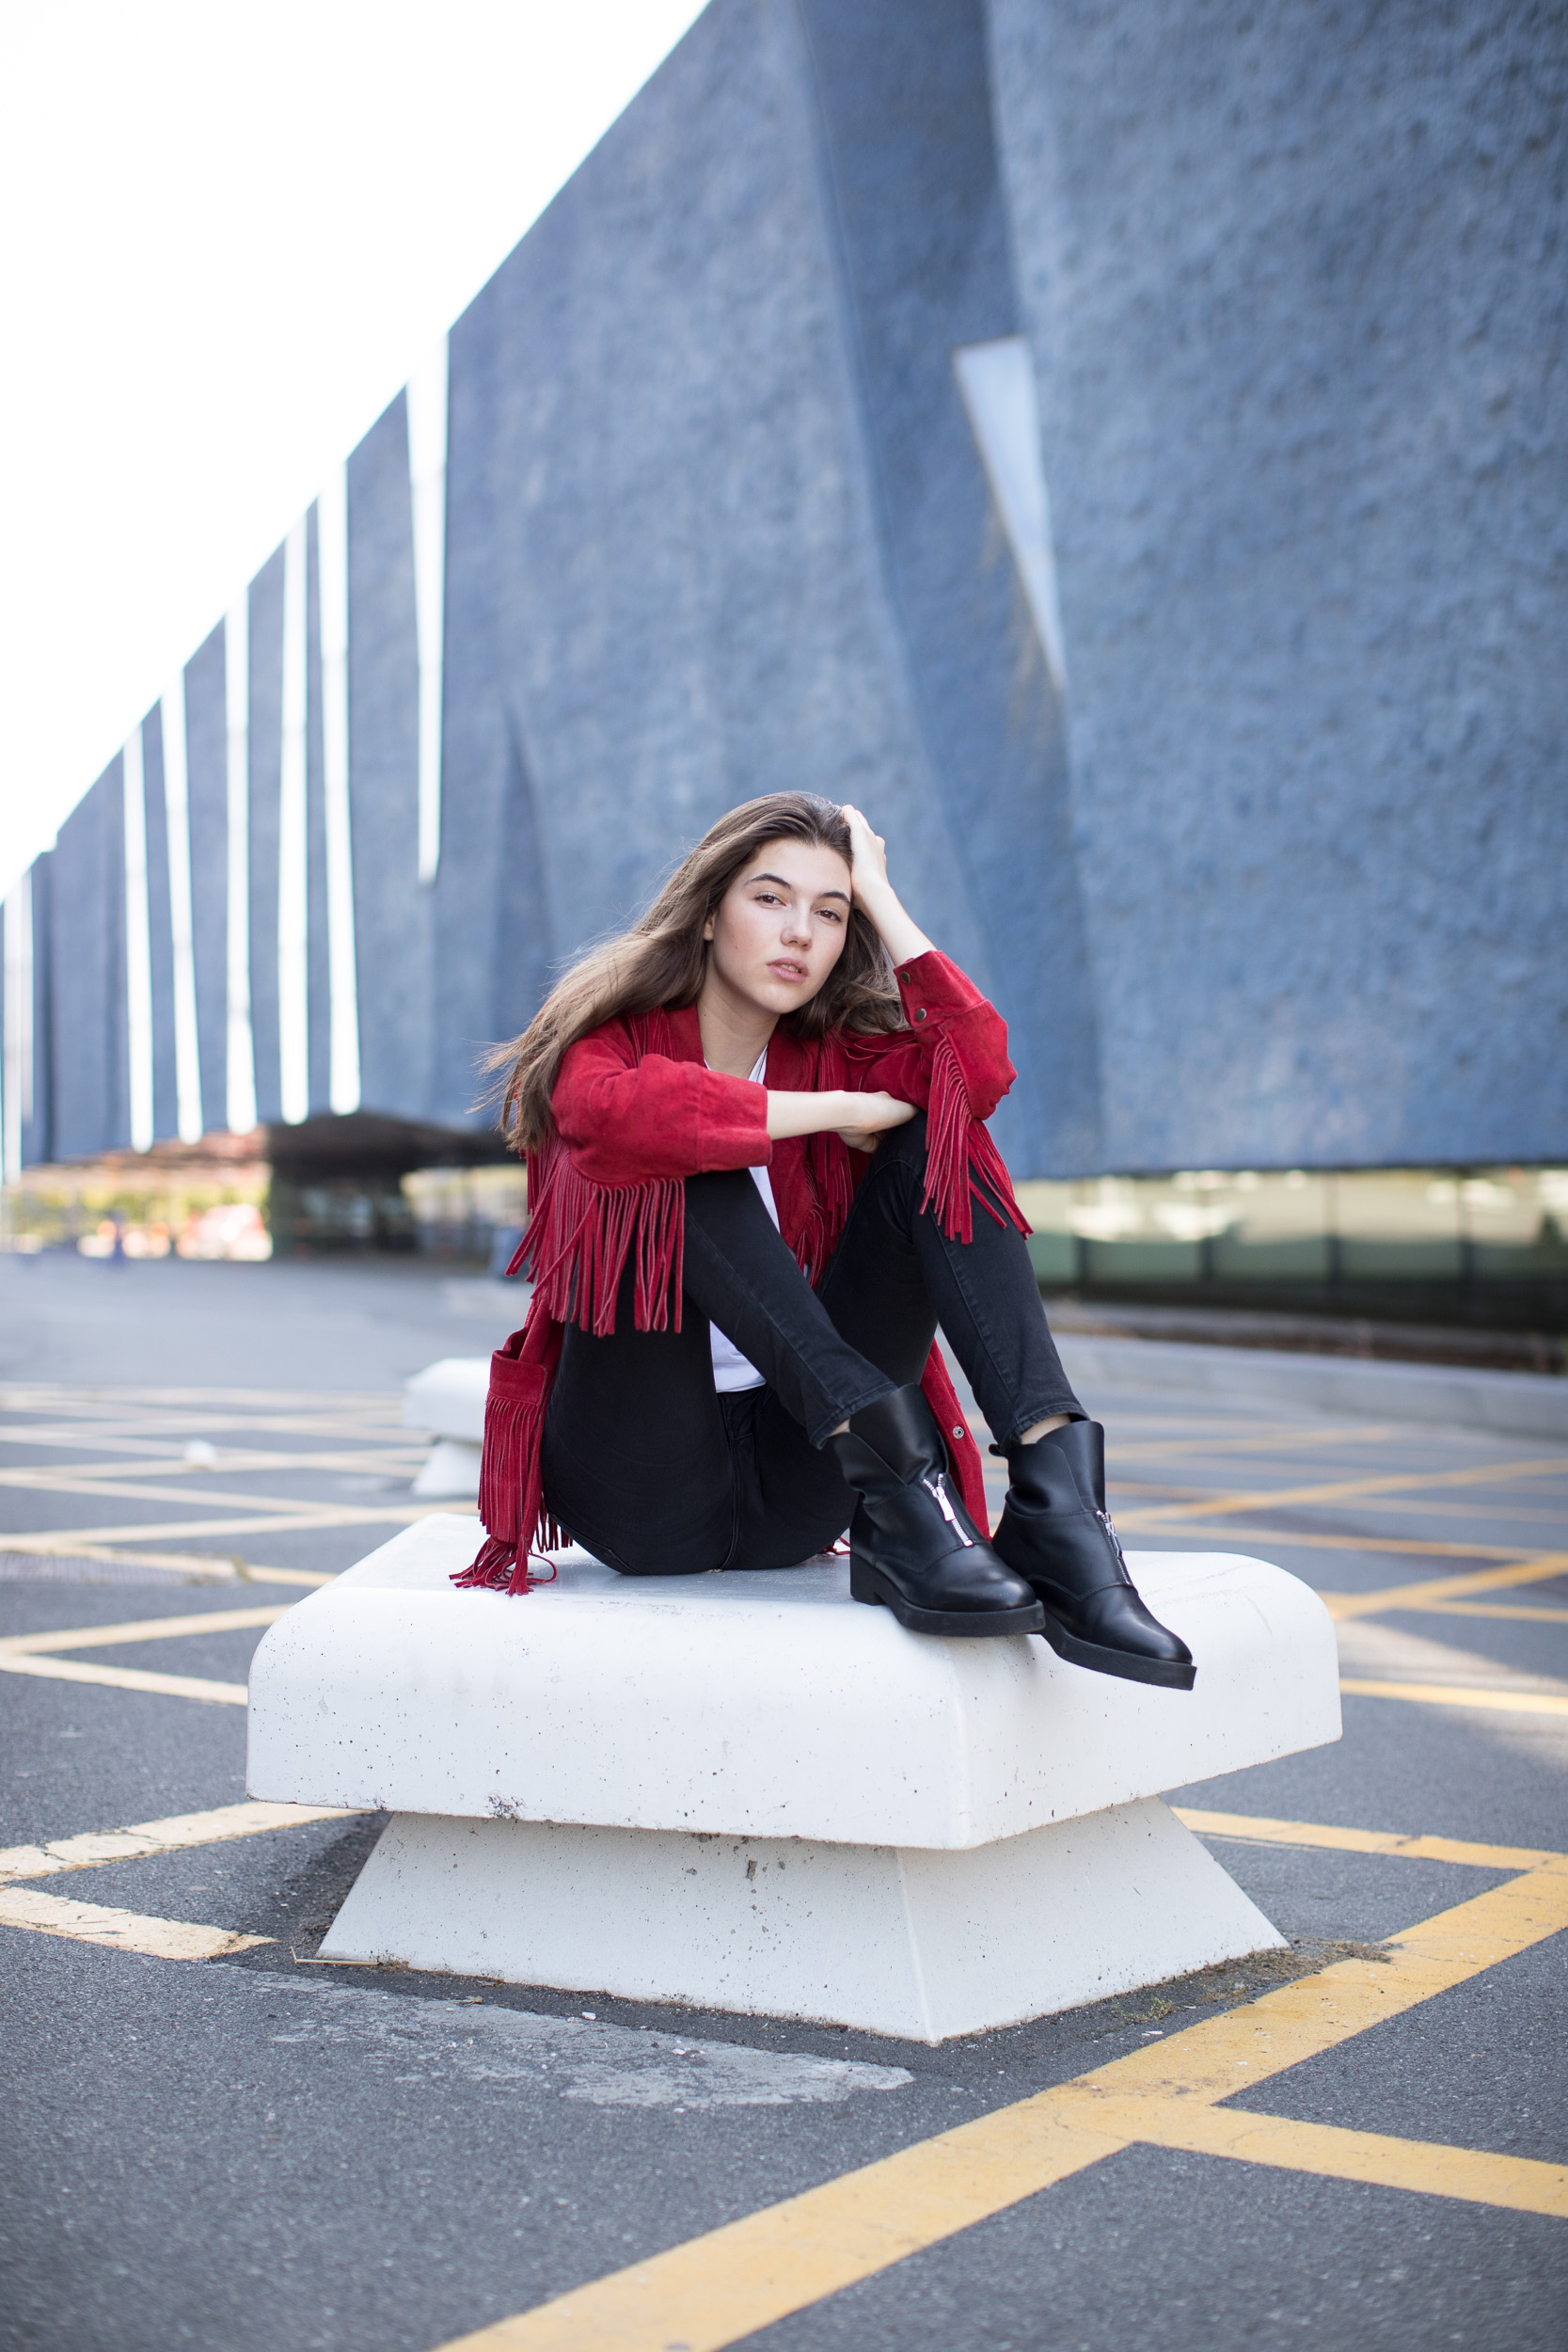 Maria model elite teen red jacket commercial photographer beautiful blue wall beauty inspiration fashion